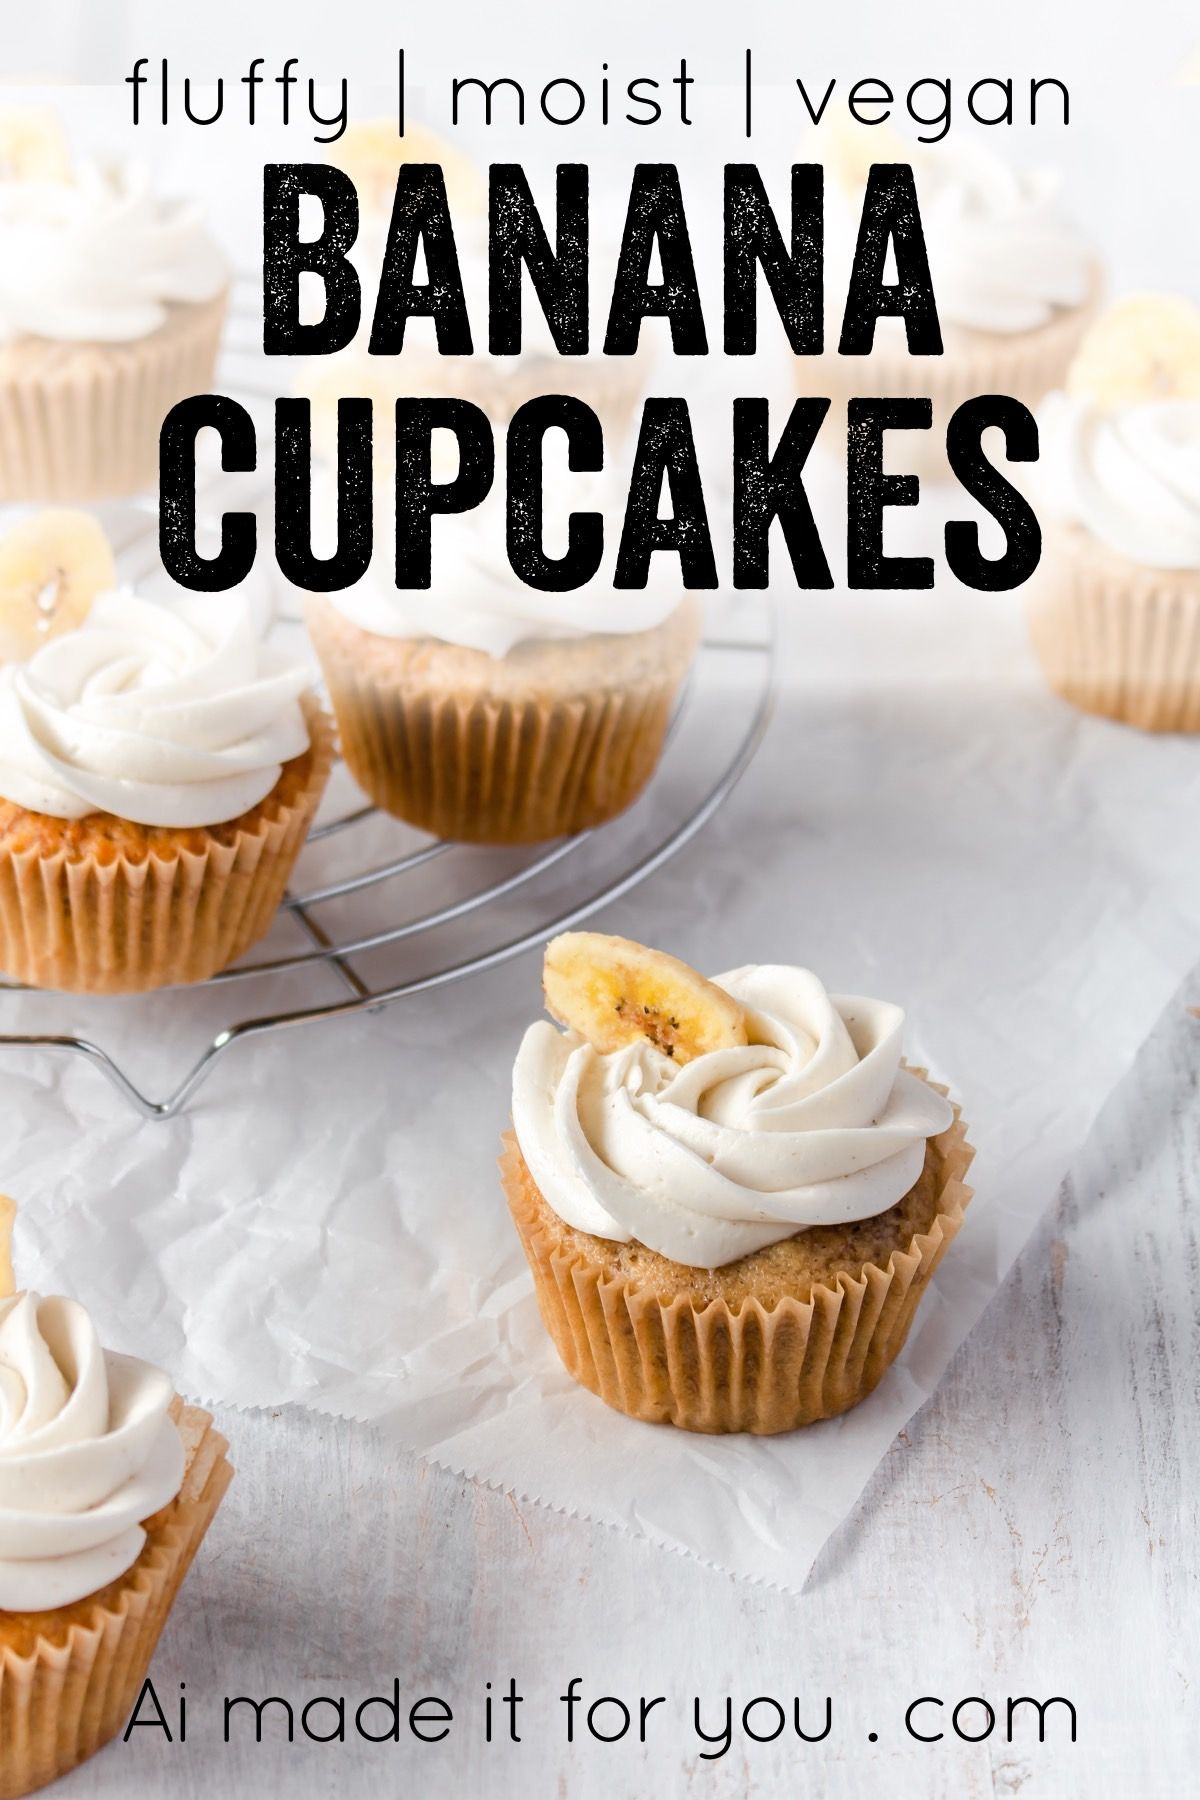 Vegan Banana Cupcakes Easy Fluffy And Moist Ai Made It For You In 2020 Easy Cupcake Recipes Dessert Recipes Easy Gourmet Cupcakes